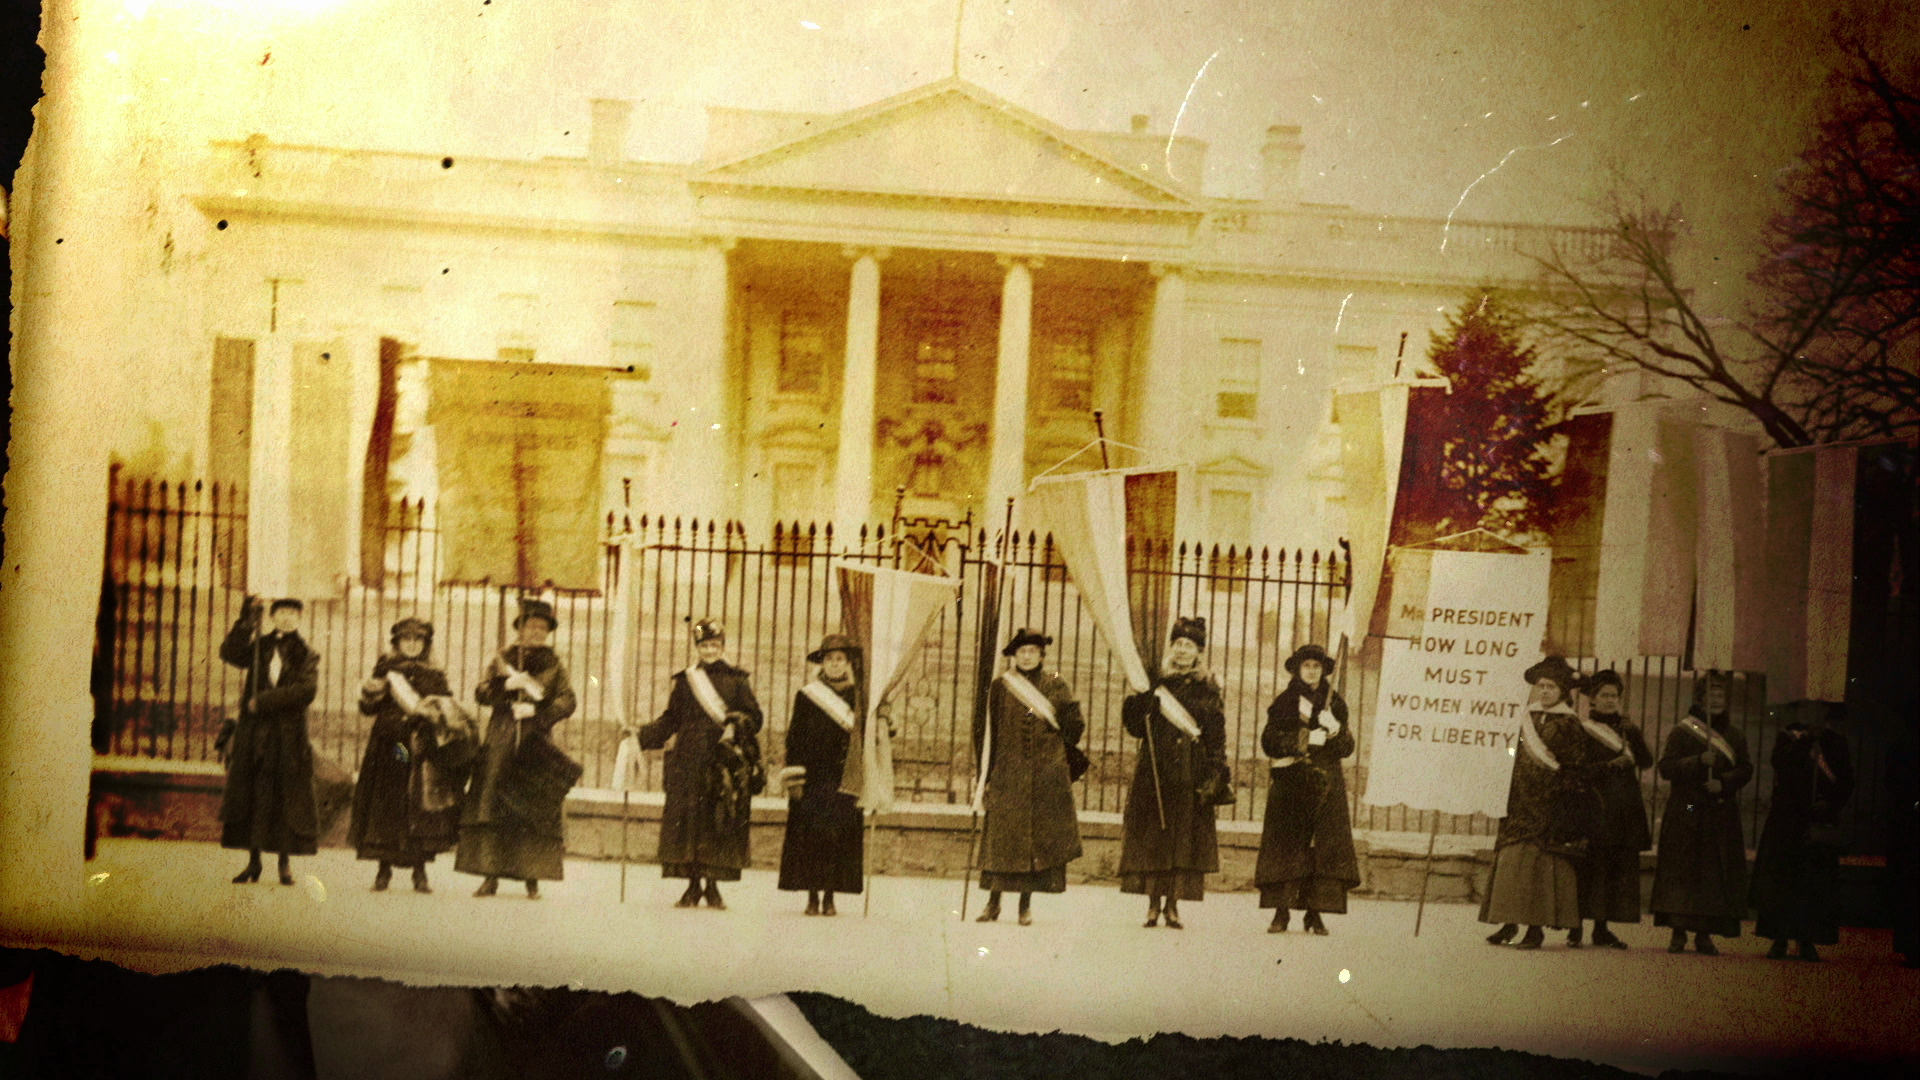 The 19th Amendment: A Woman's Right to Choose